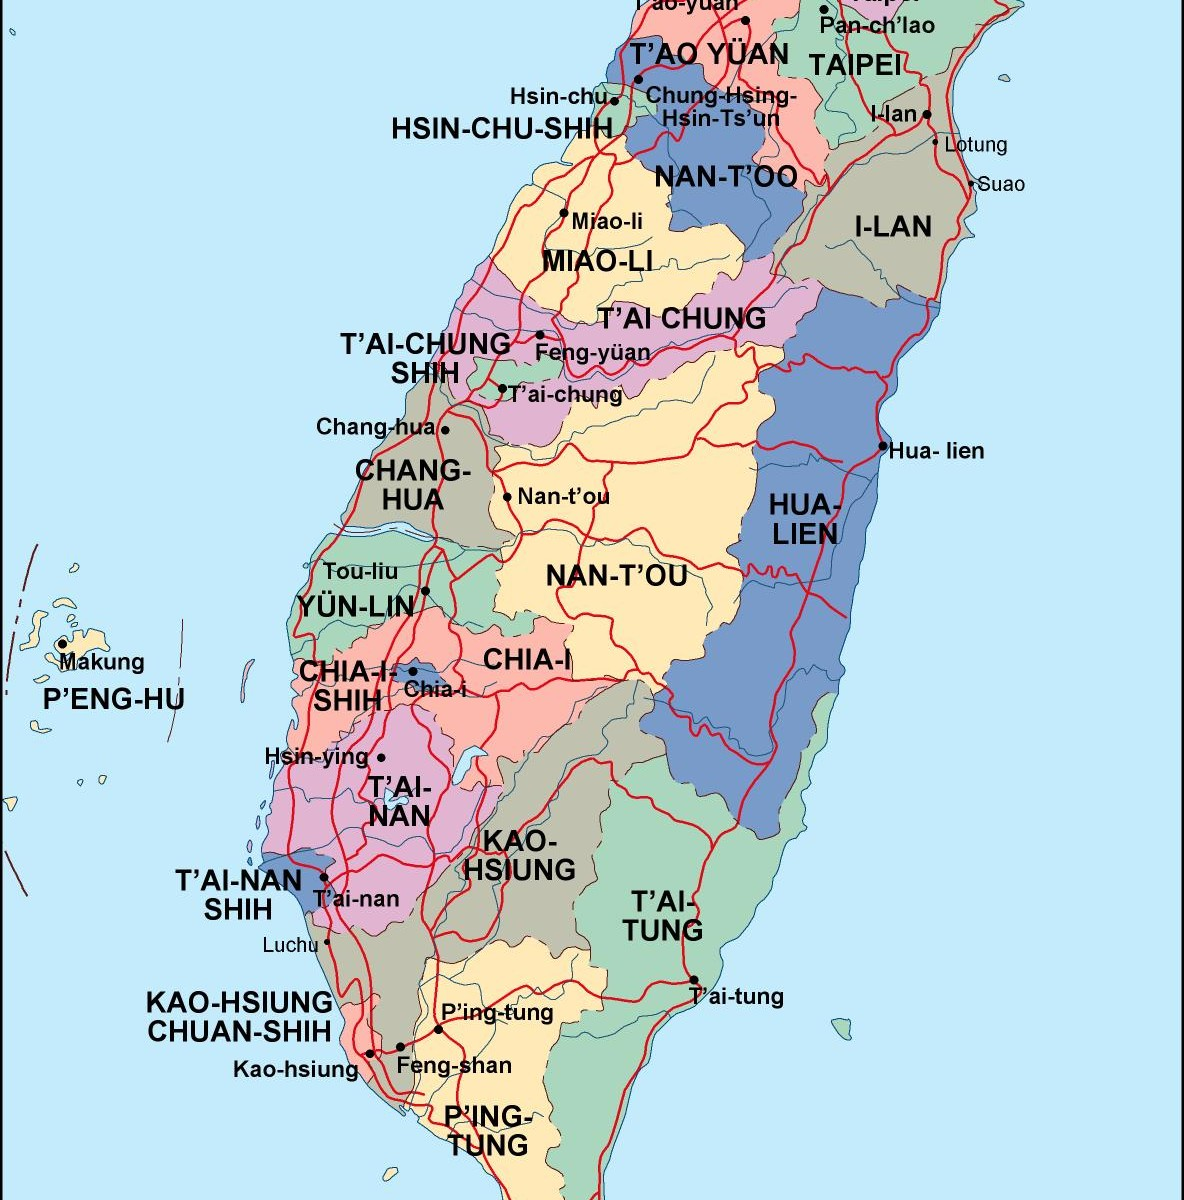 Taiwan political map eps illustrator map a vector eps maps taiwan political map gumiabroncs Choice Image